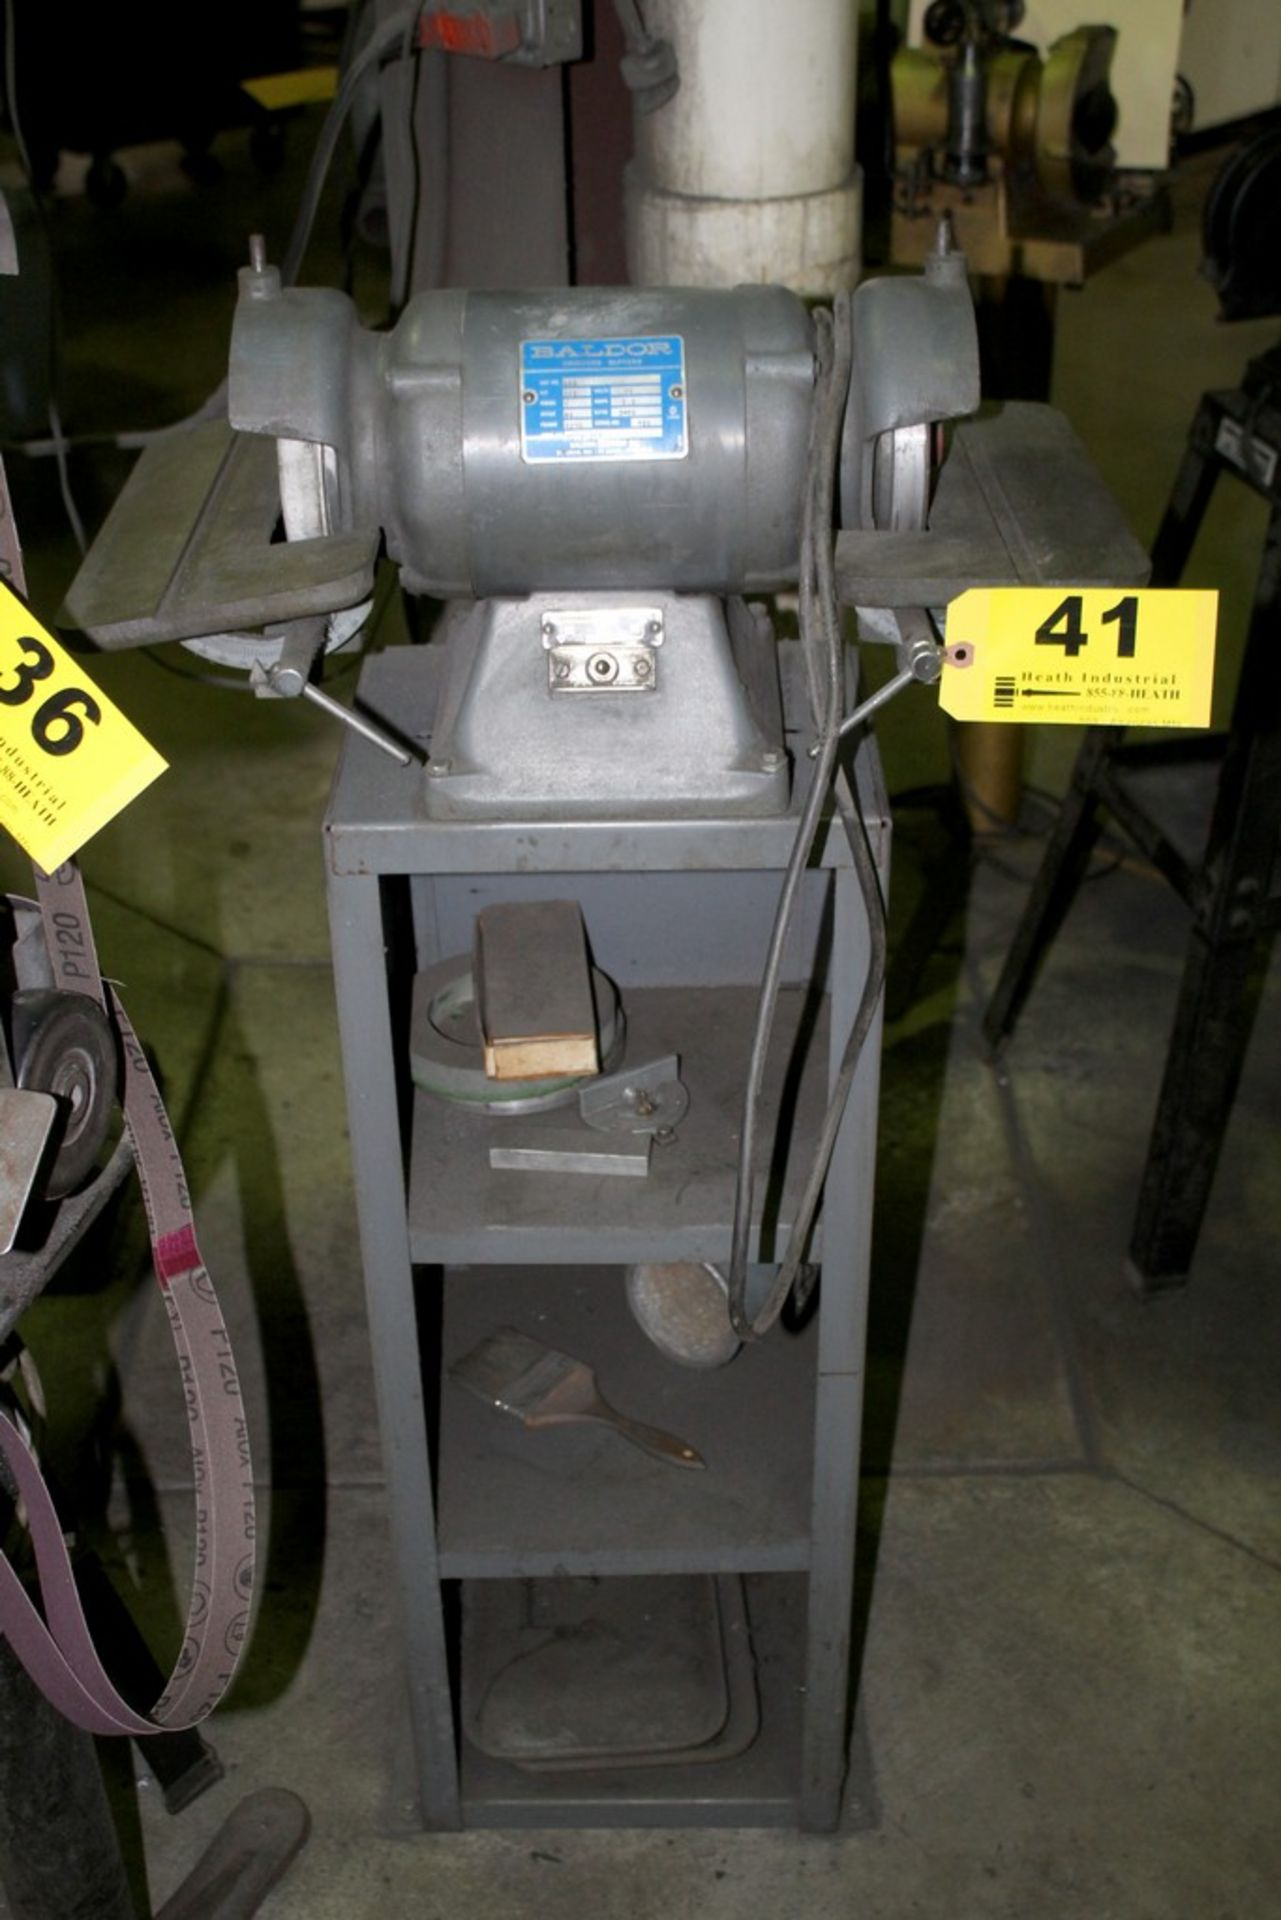 Lot 41 - BALDOR 1/2 HP DOUBLE END CARBIDE GRINDER S/N A559-343 ON STEEL STAND